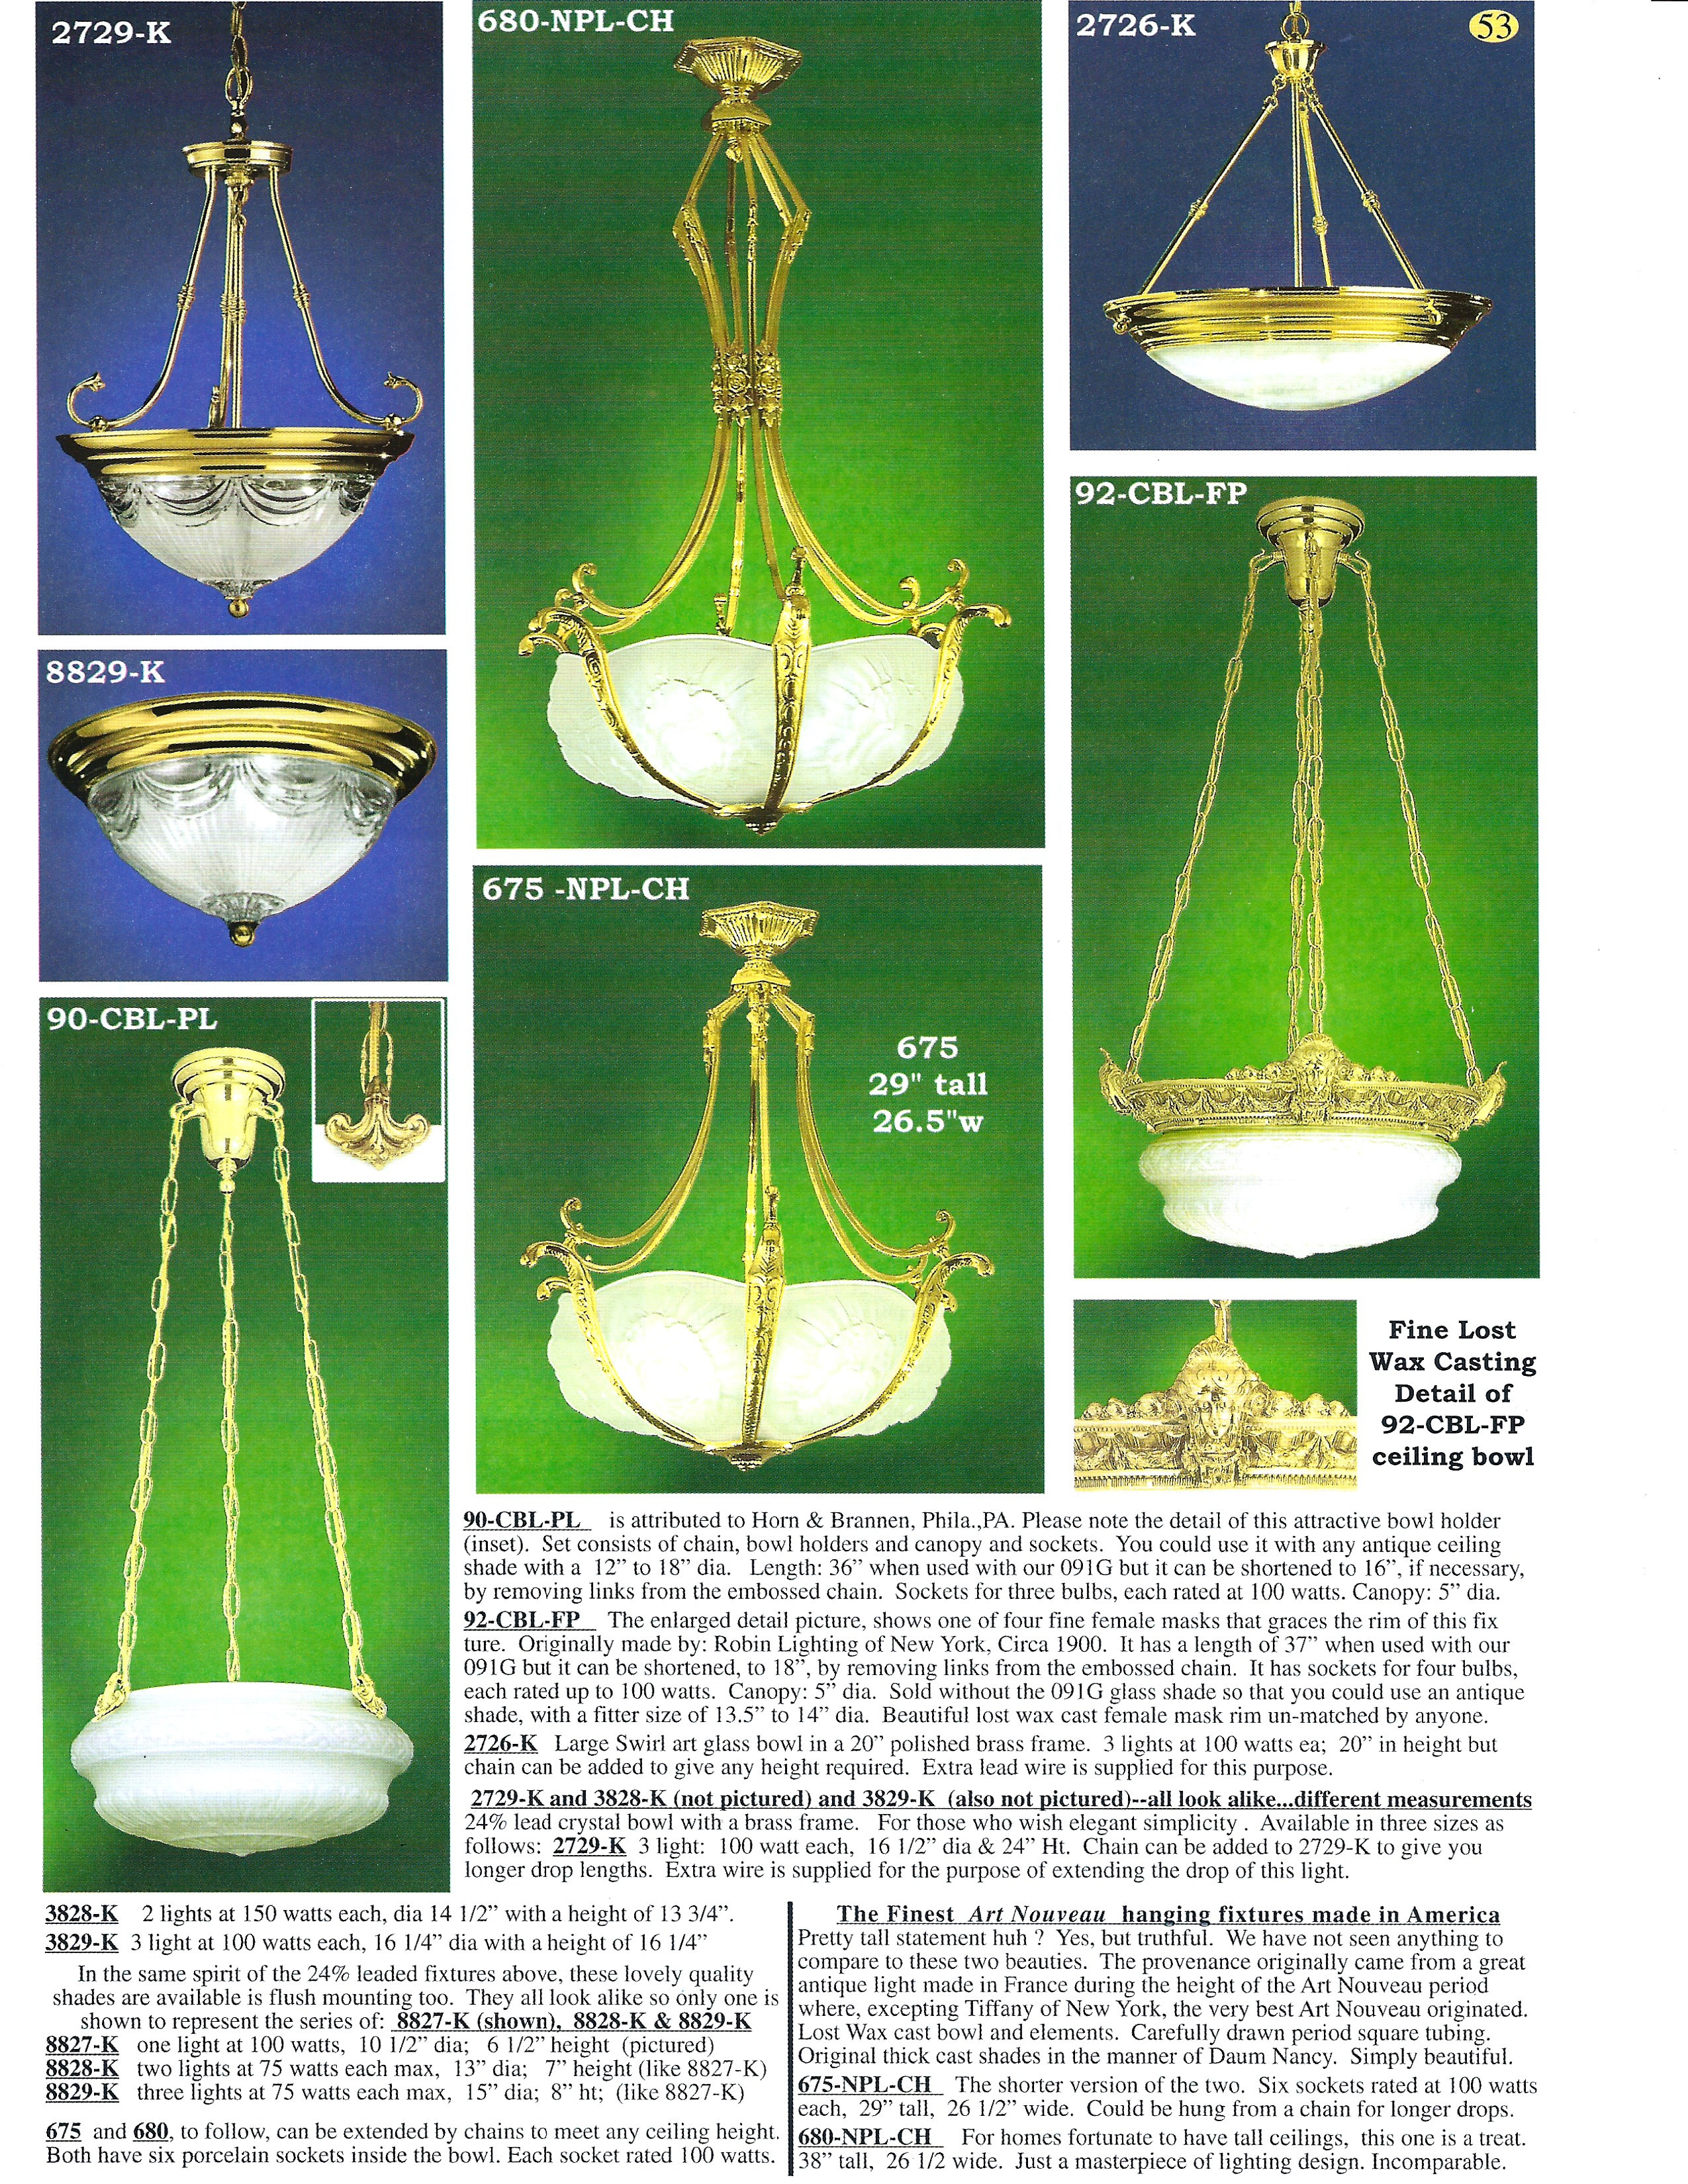 Catalog page 77